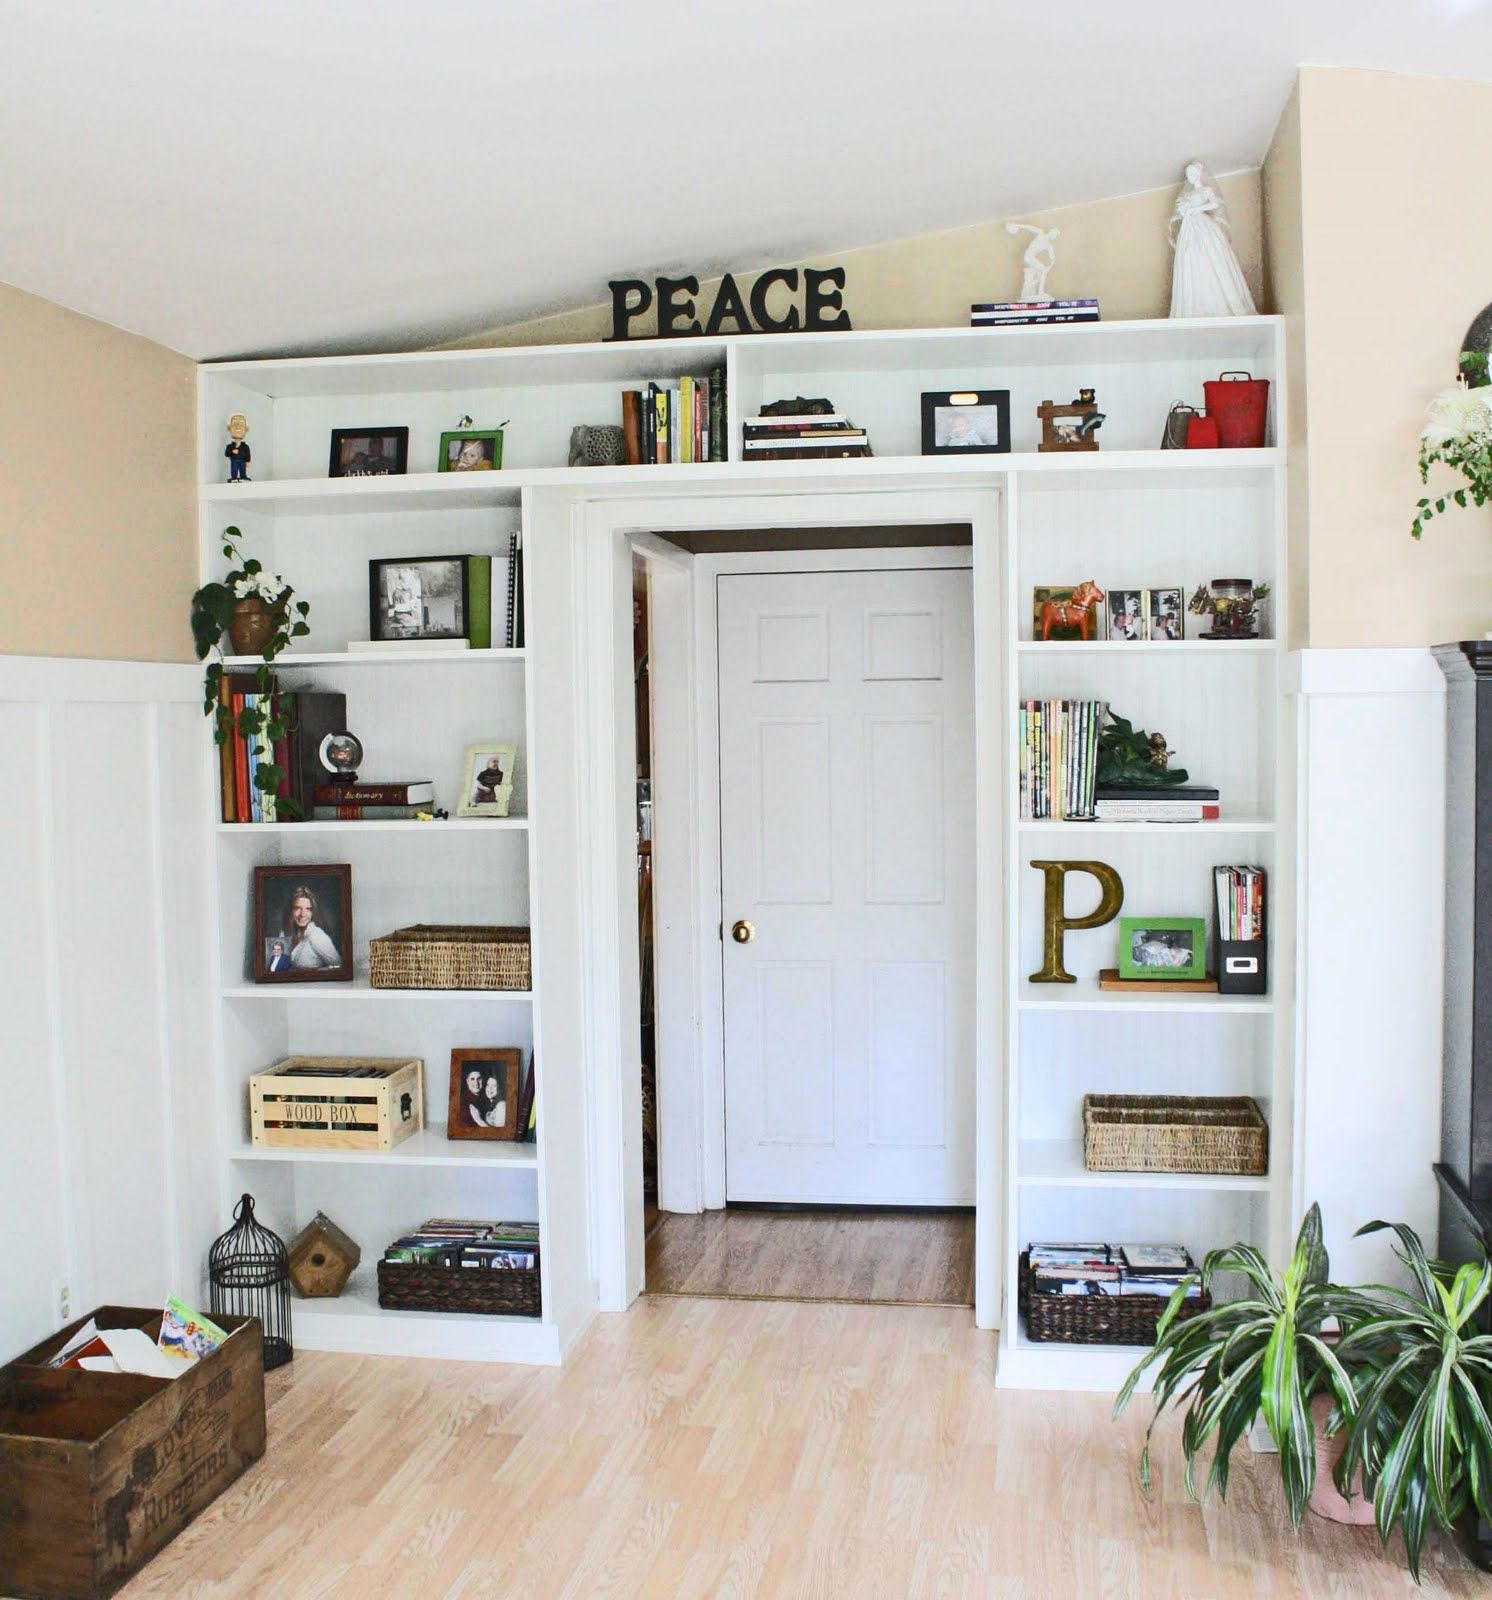 Small Space Storage Ideas: Surround A Door With Shelves. Use Purchased  Units Or Cabinets To Give The Look Of Built Ins. Then Run A Shelf Across  The Top From ...